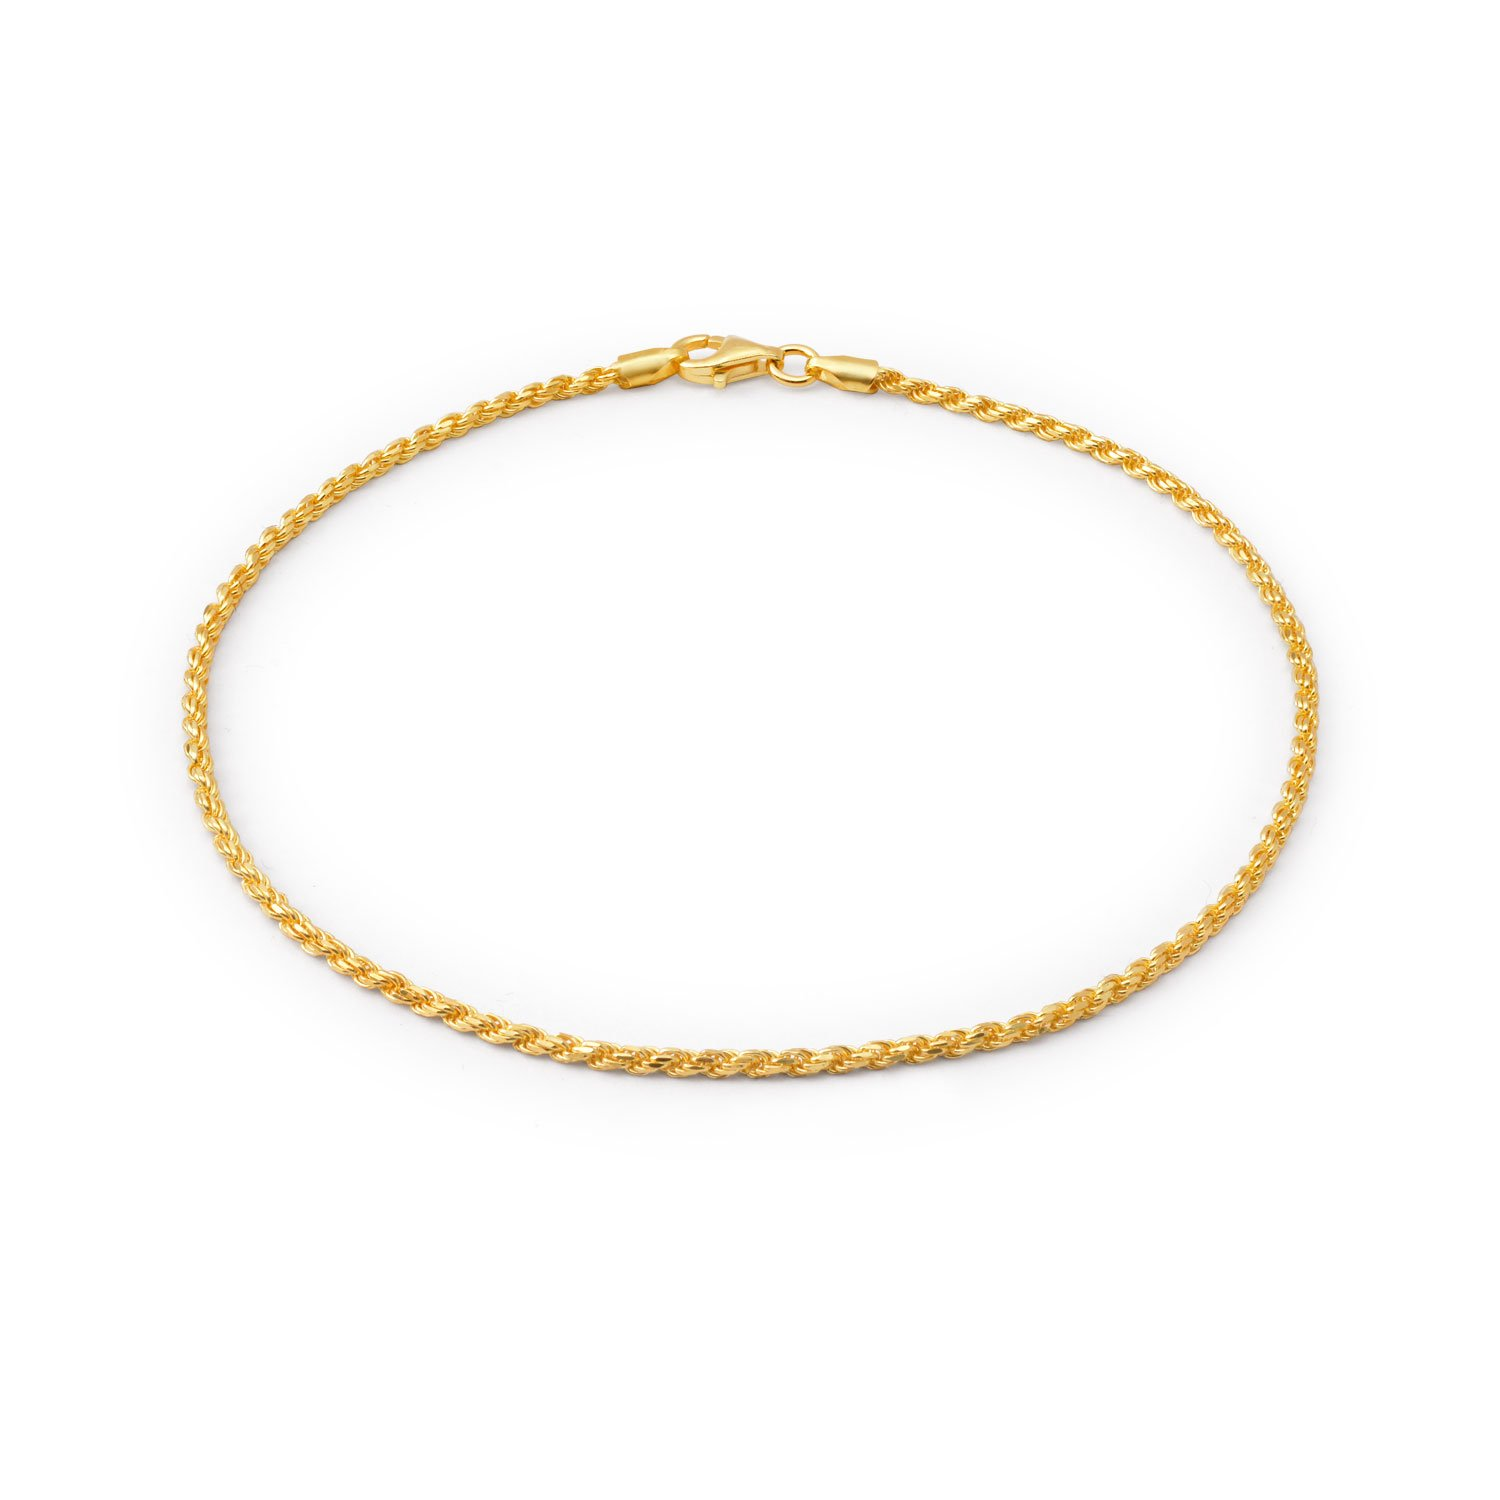 Bling Jewelry 40 Gauge 925 Sterling Silver Gold Plated Rope Anklet Italy CHY-ROPE040GA-10